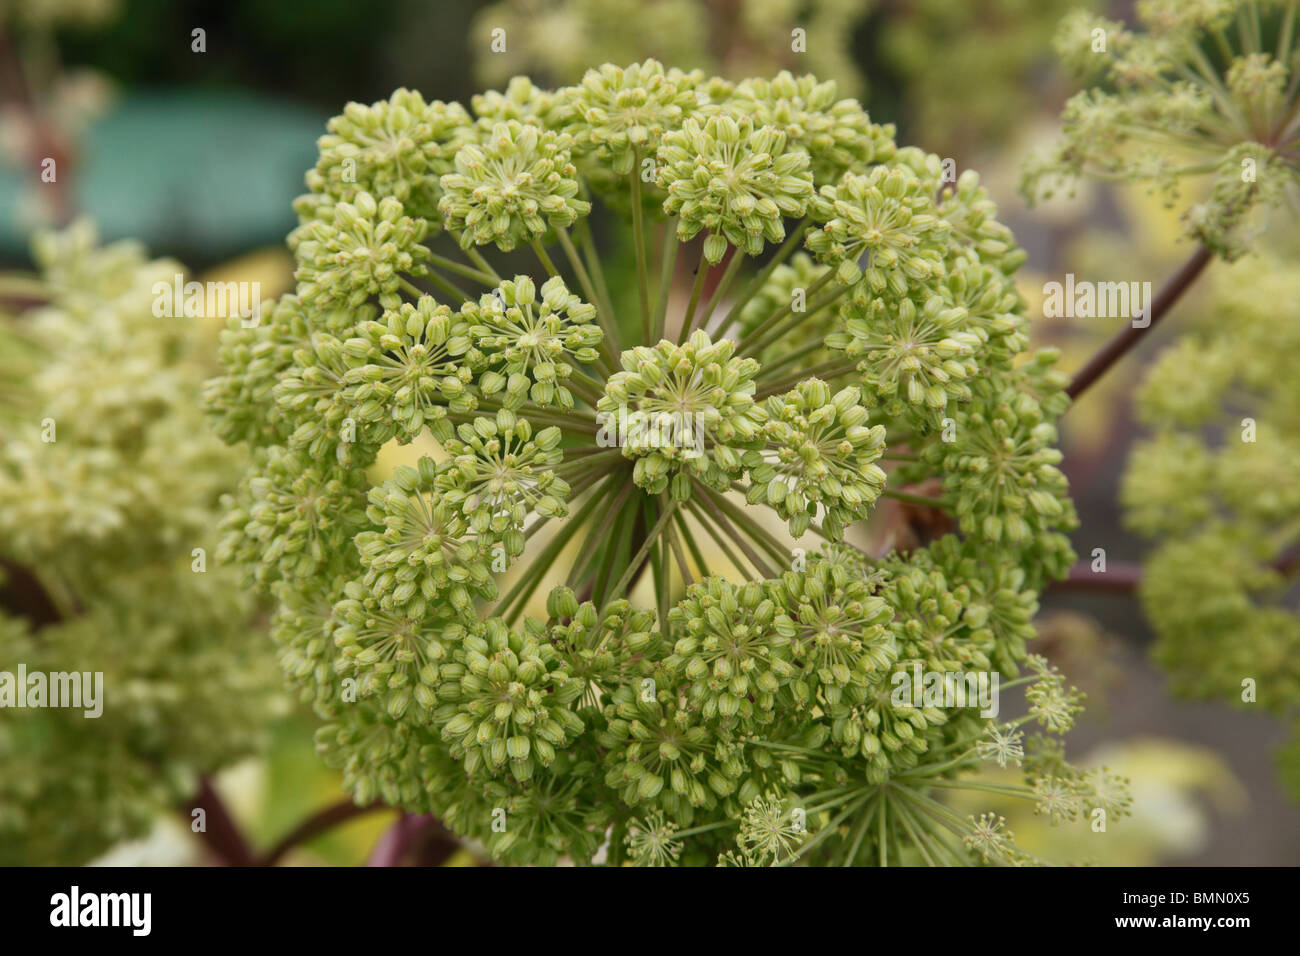 Angelica (Angelica archangelica) close up of seedhead - Stock Image